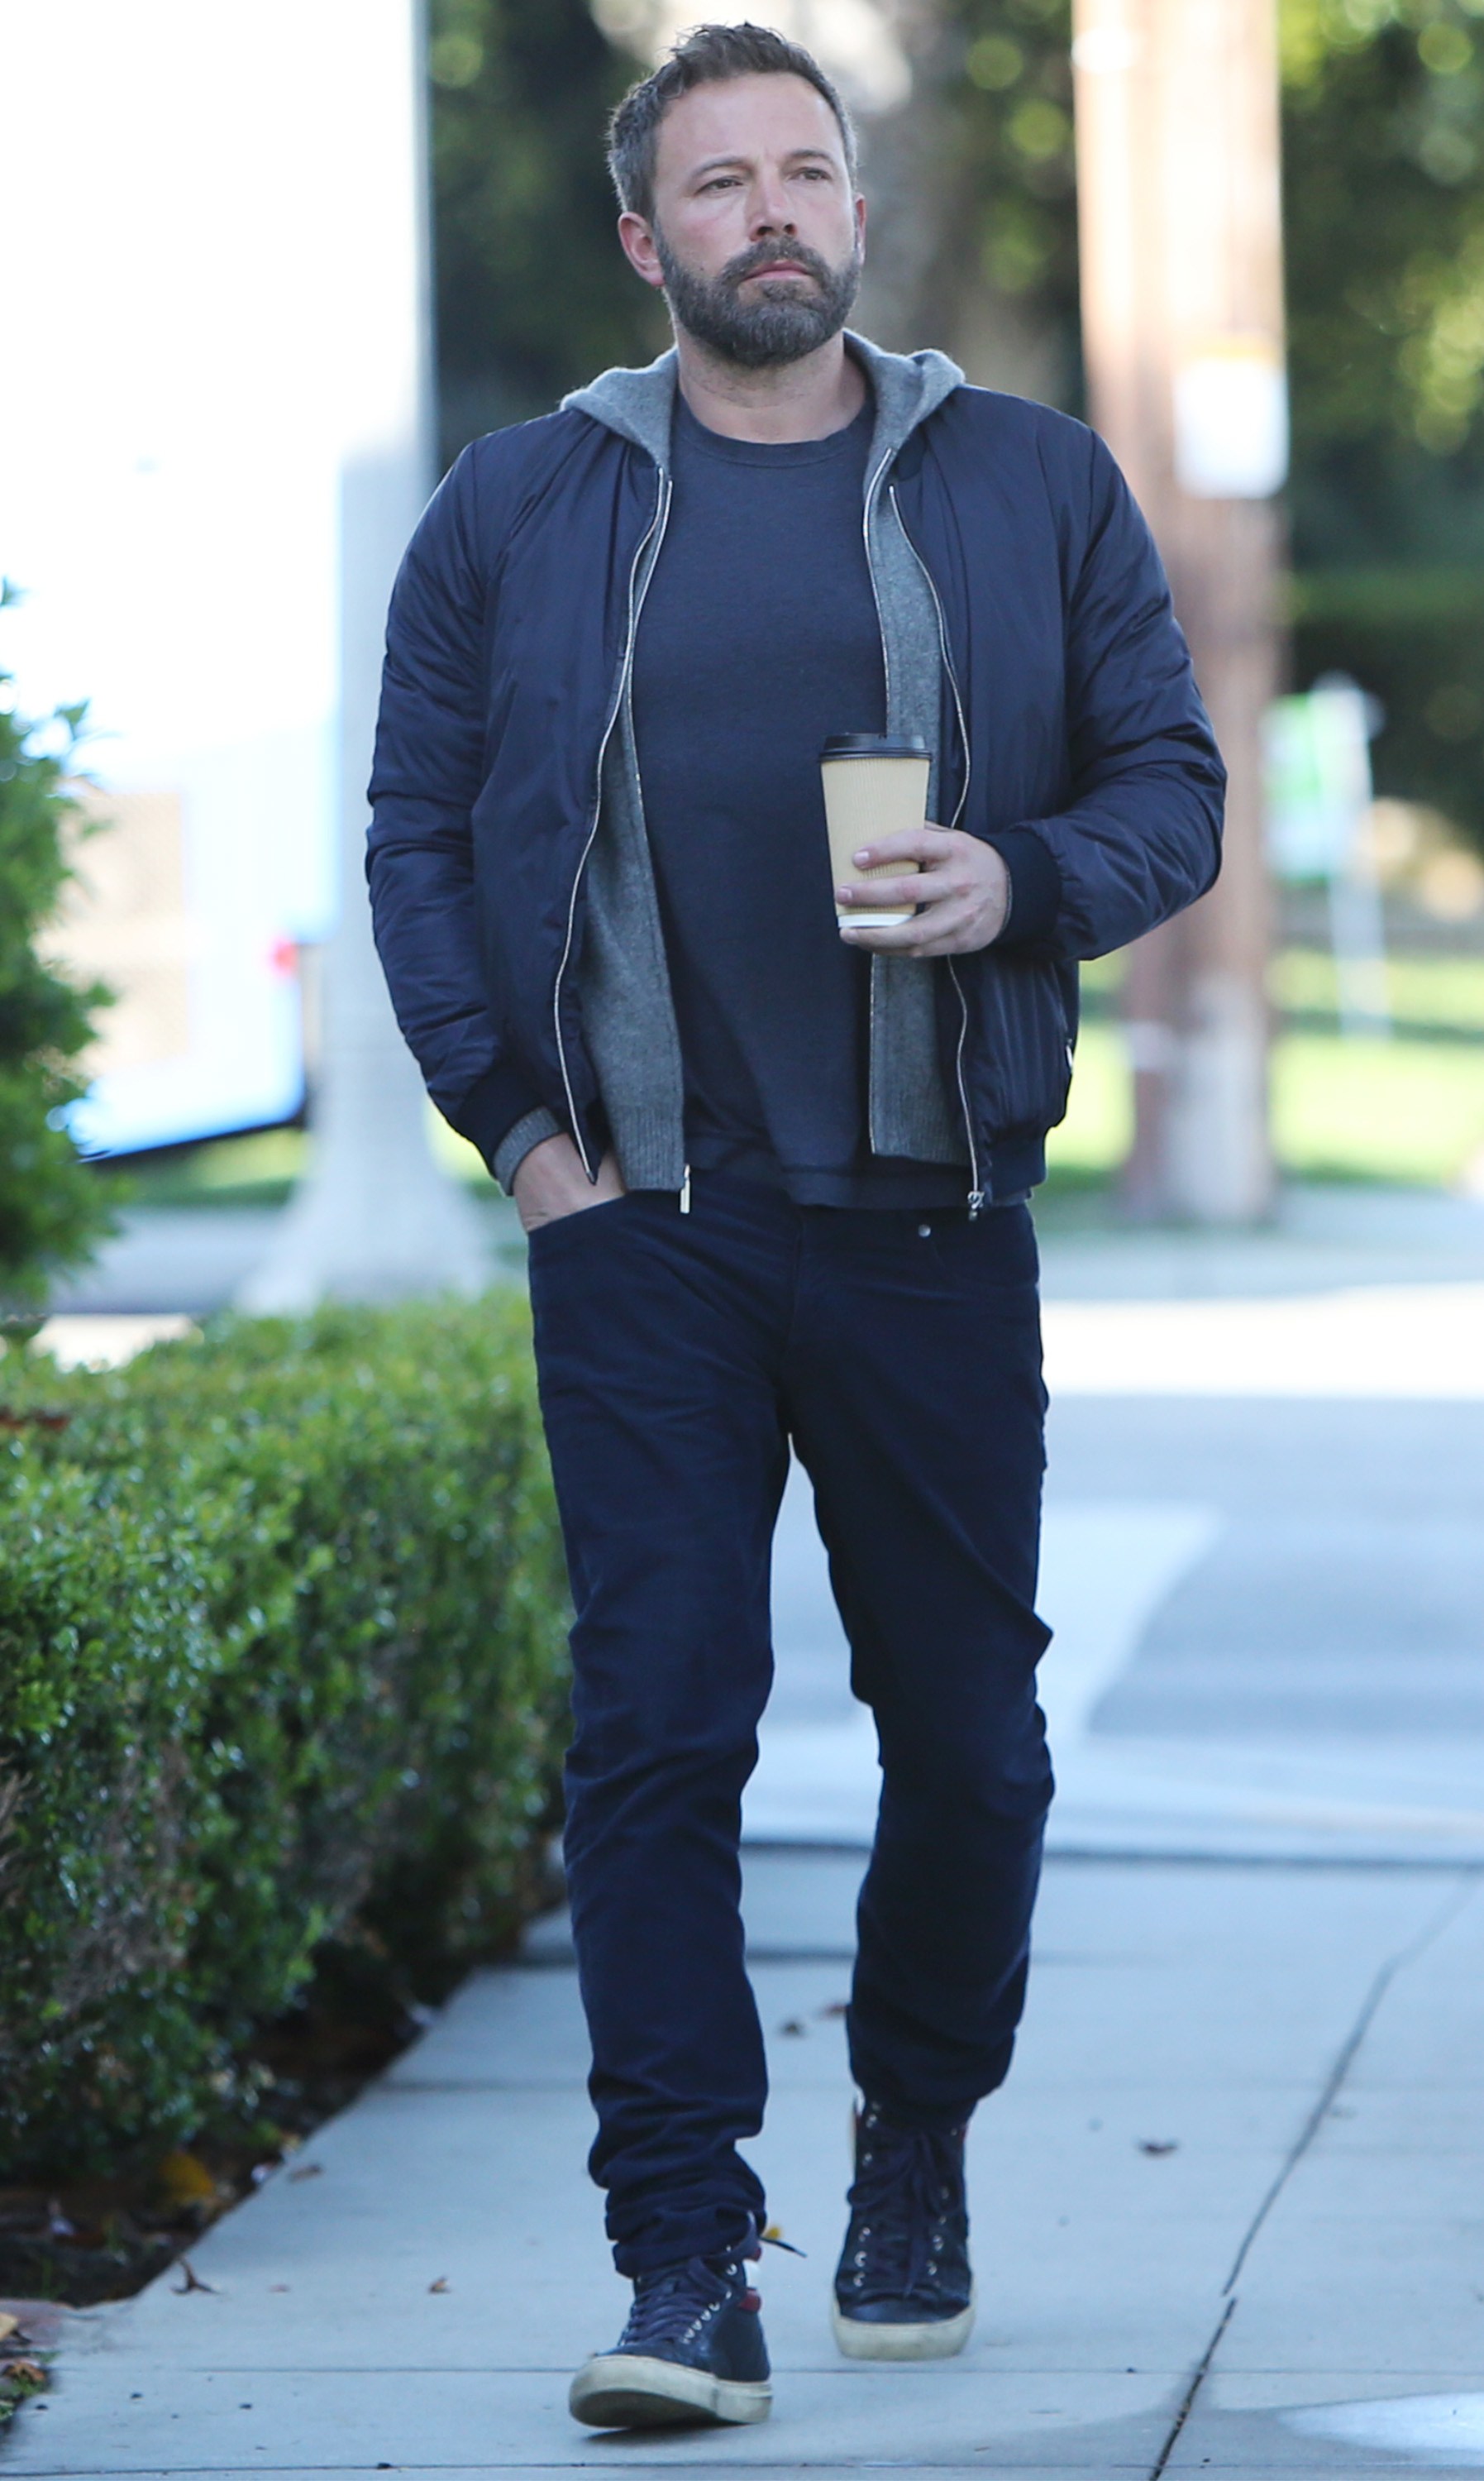 Ben Affleck enjoys a coffee while out and about in Los Angeles on May 20, 2019.